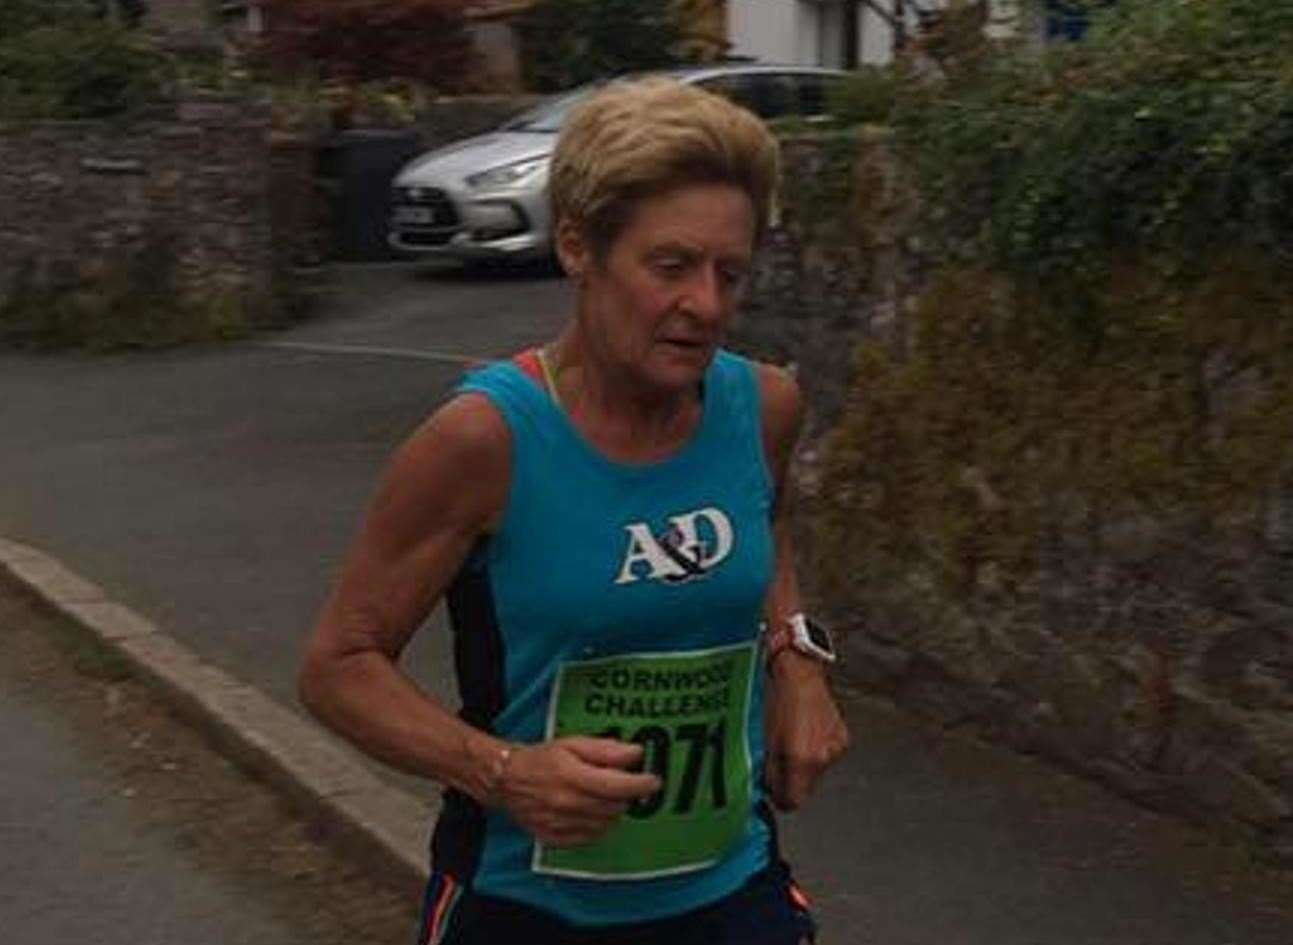 Christine Costiff of Ashford & District RRC at the Rother Valley 10k last year. She is leading the ladies virtual competition.